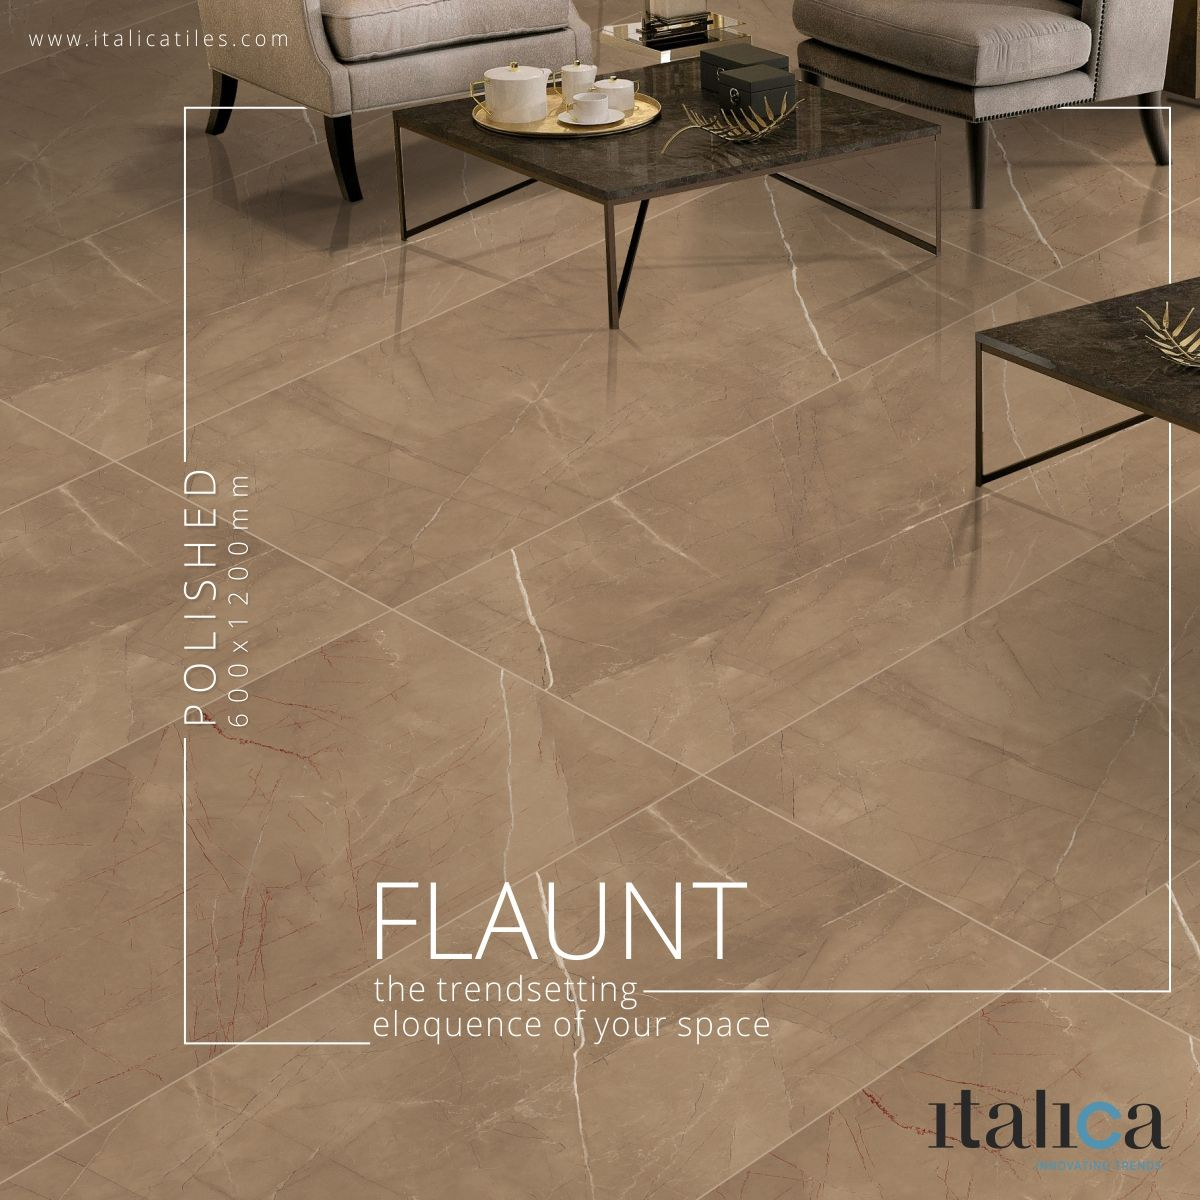 Natural veining pattern and color aesthetics of italica tiles are natural veining pattern and color aesthetics of italica tiles are sure to woo your aura dailygadgetfo Gallery